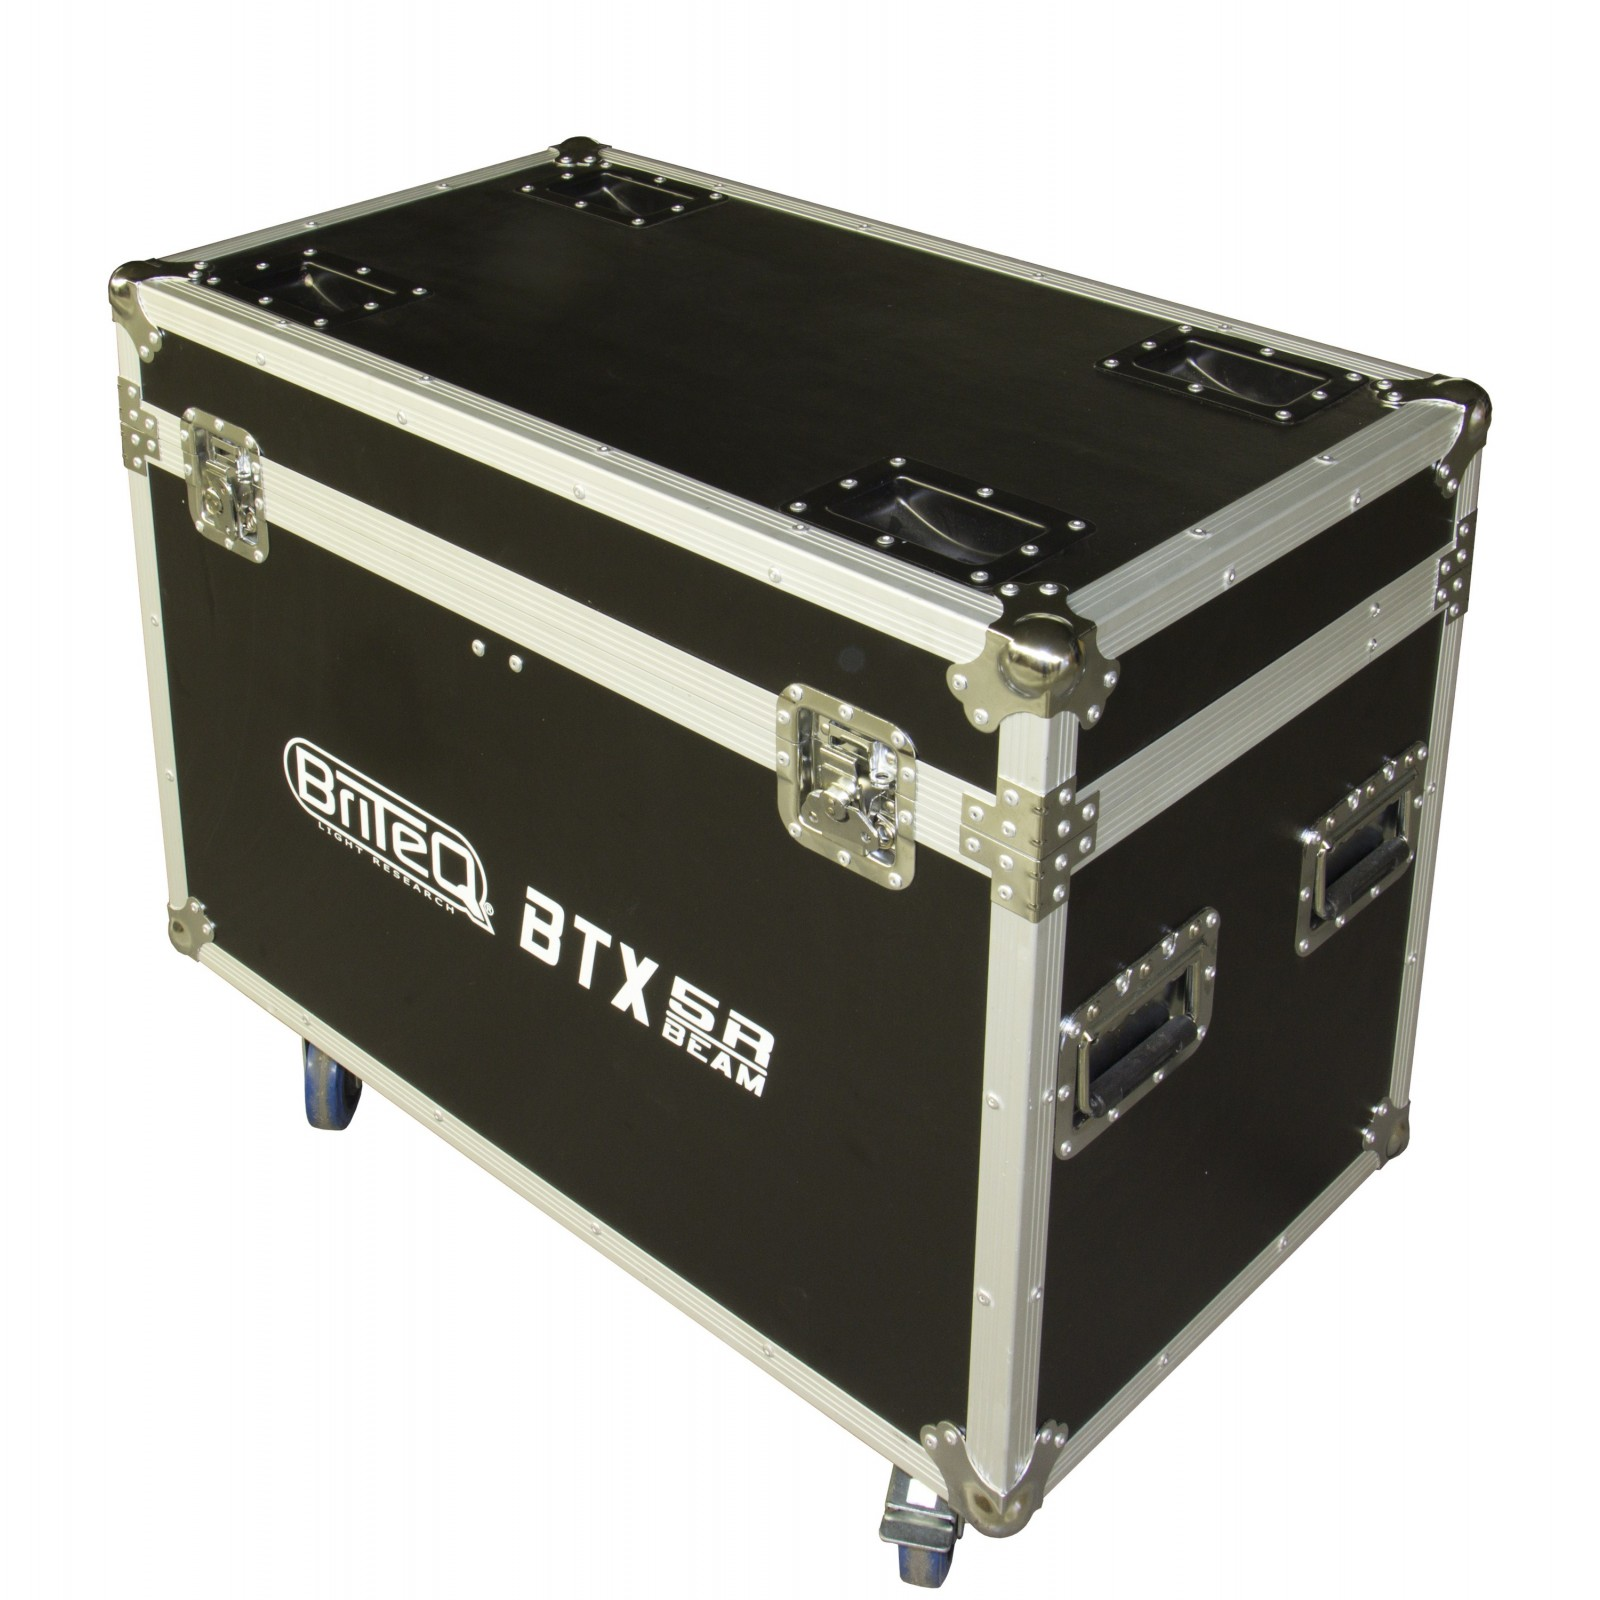 briteq case for 2x btx beam 5r flightcases. Black Bedroom Furniture Sets. Home Design Ideas